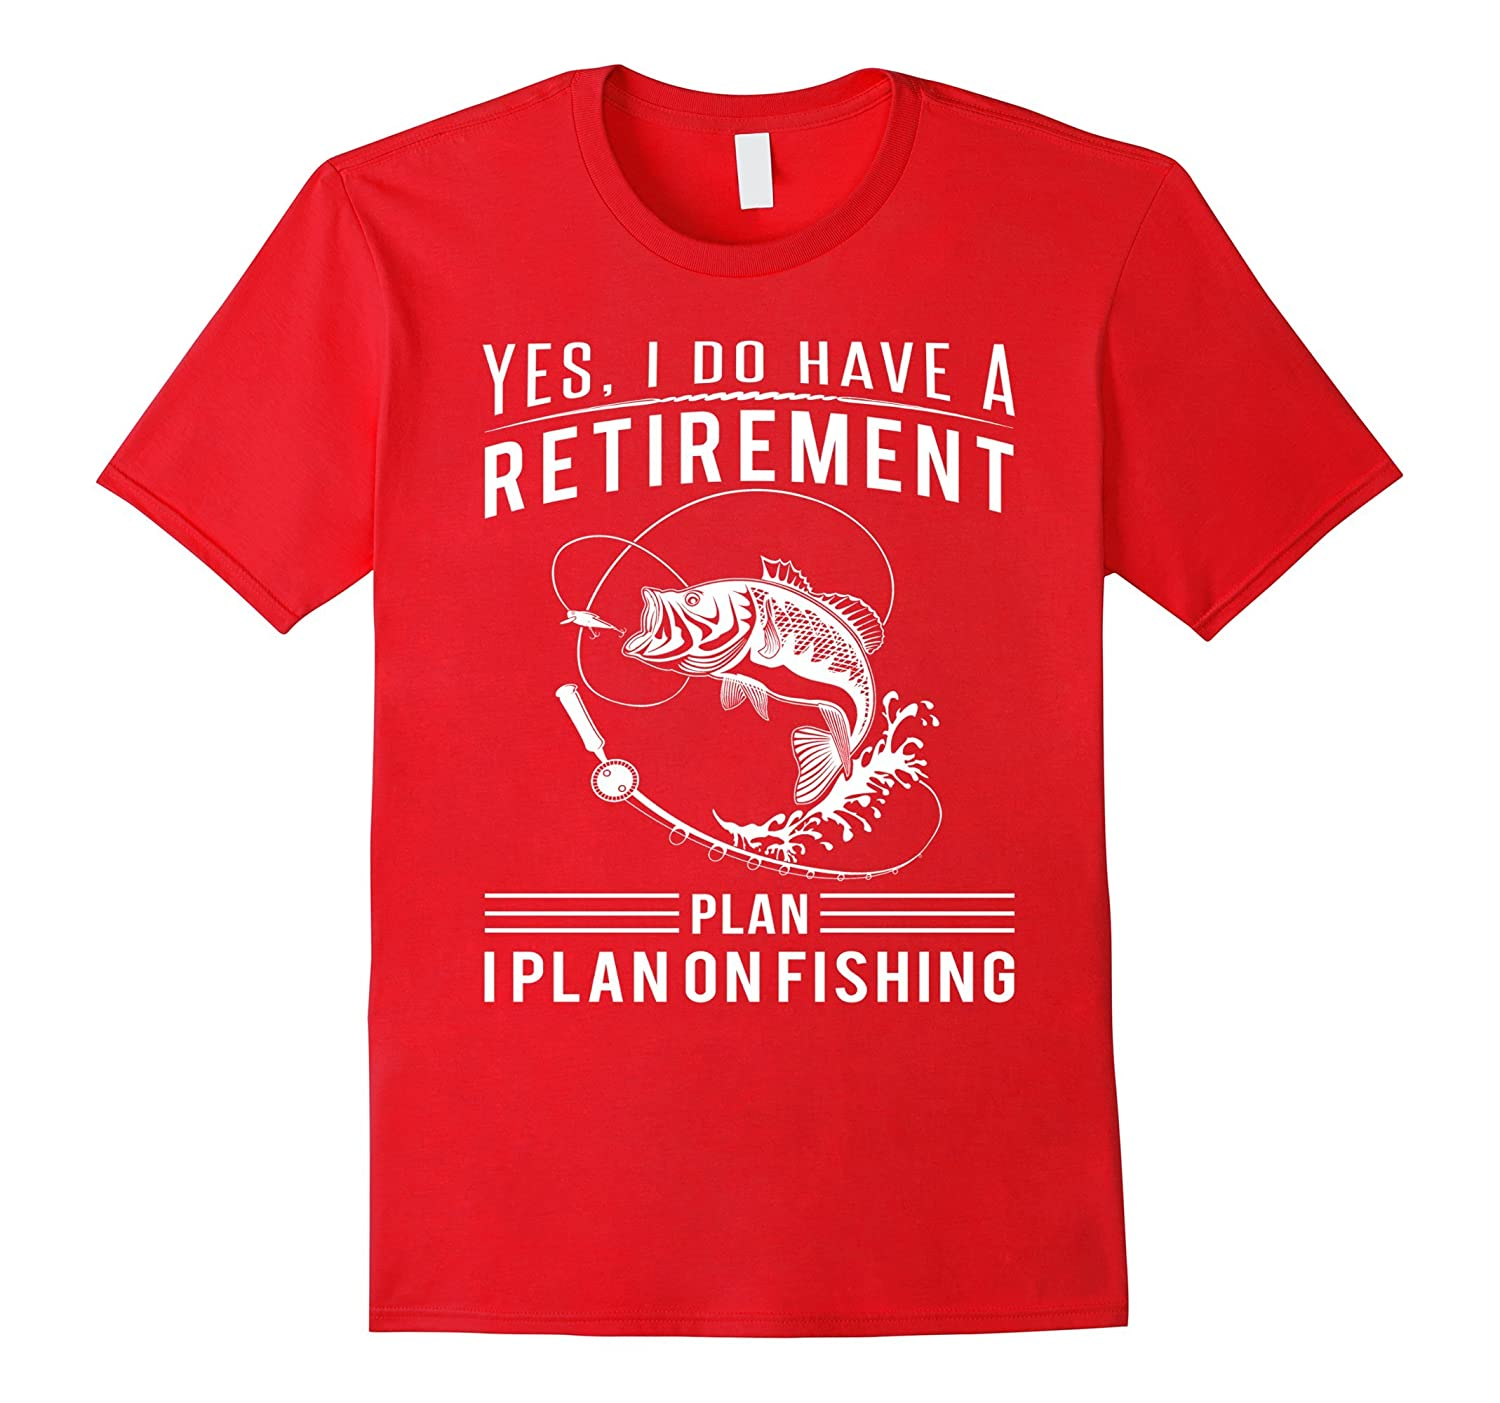 Yes, I do have a Retirement plan. I plan on Fishing t-shirts-Rose